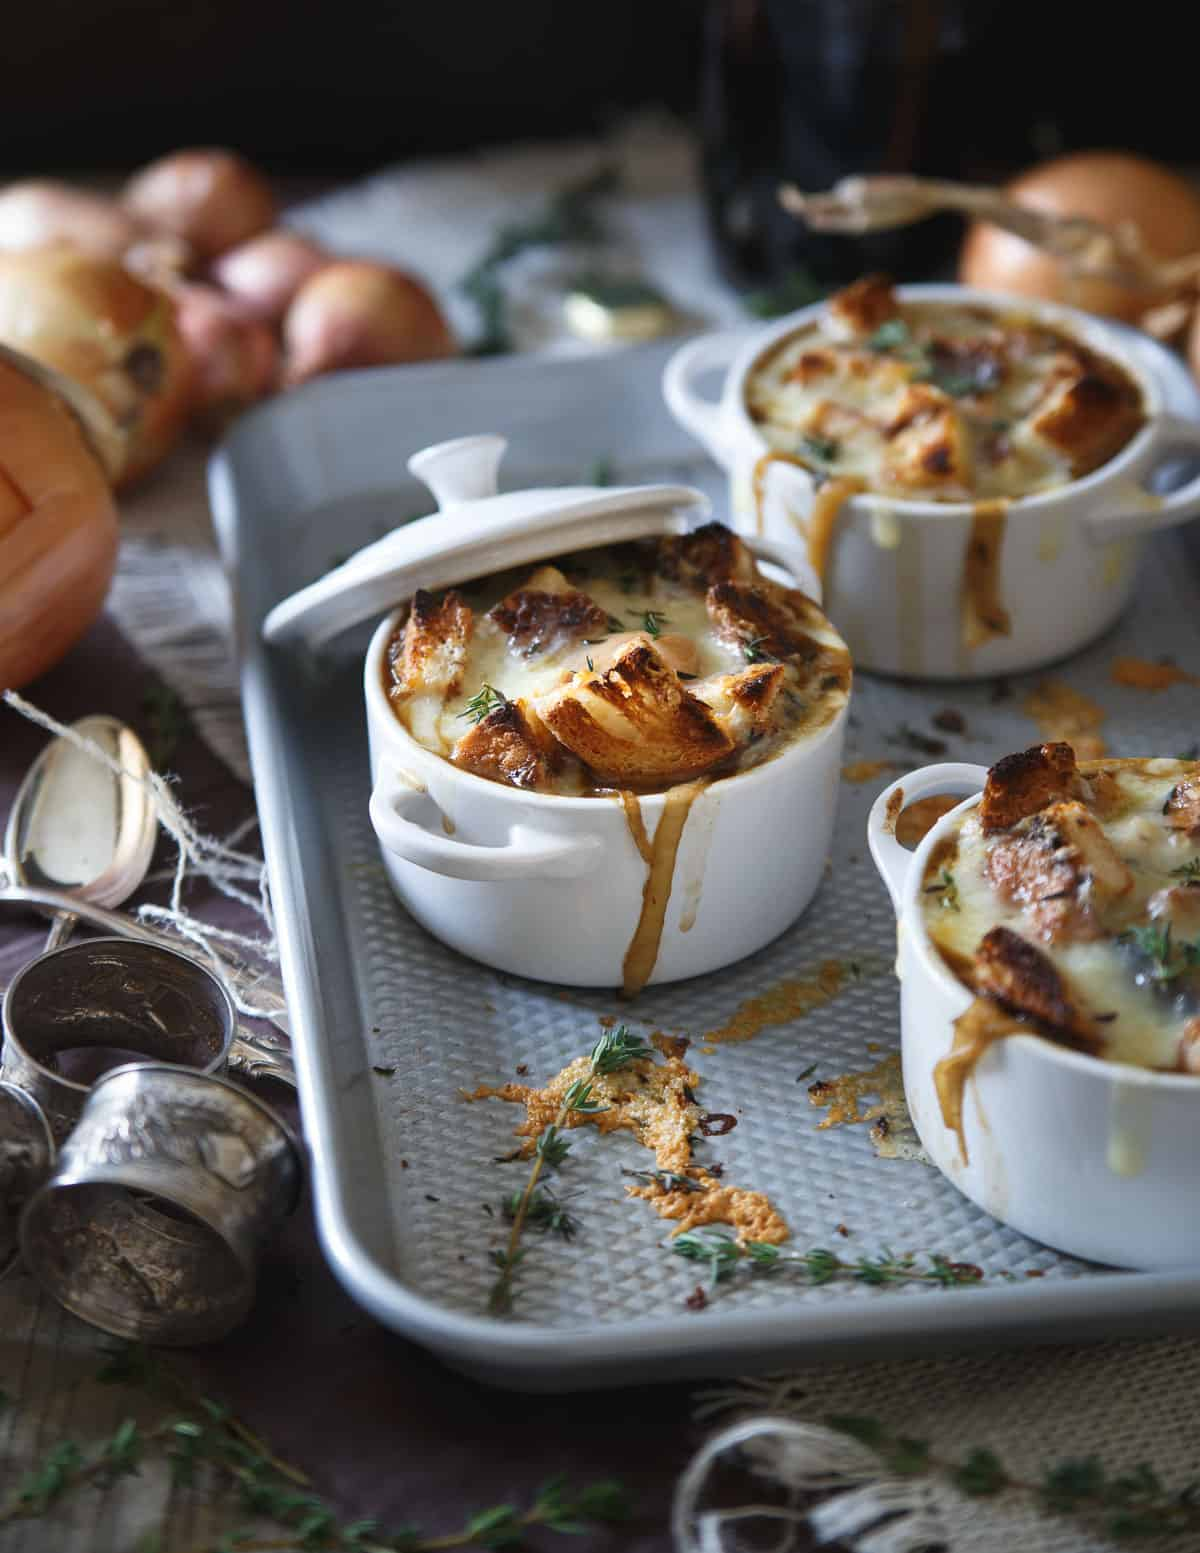 This gluten free Irish stout onion soup is made with buttery toasted thyme croutons and topped with plenty of Irish cheddar.